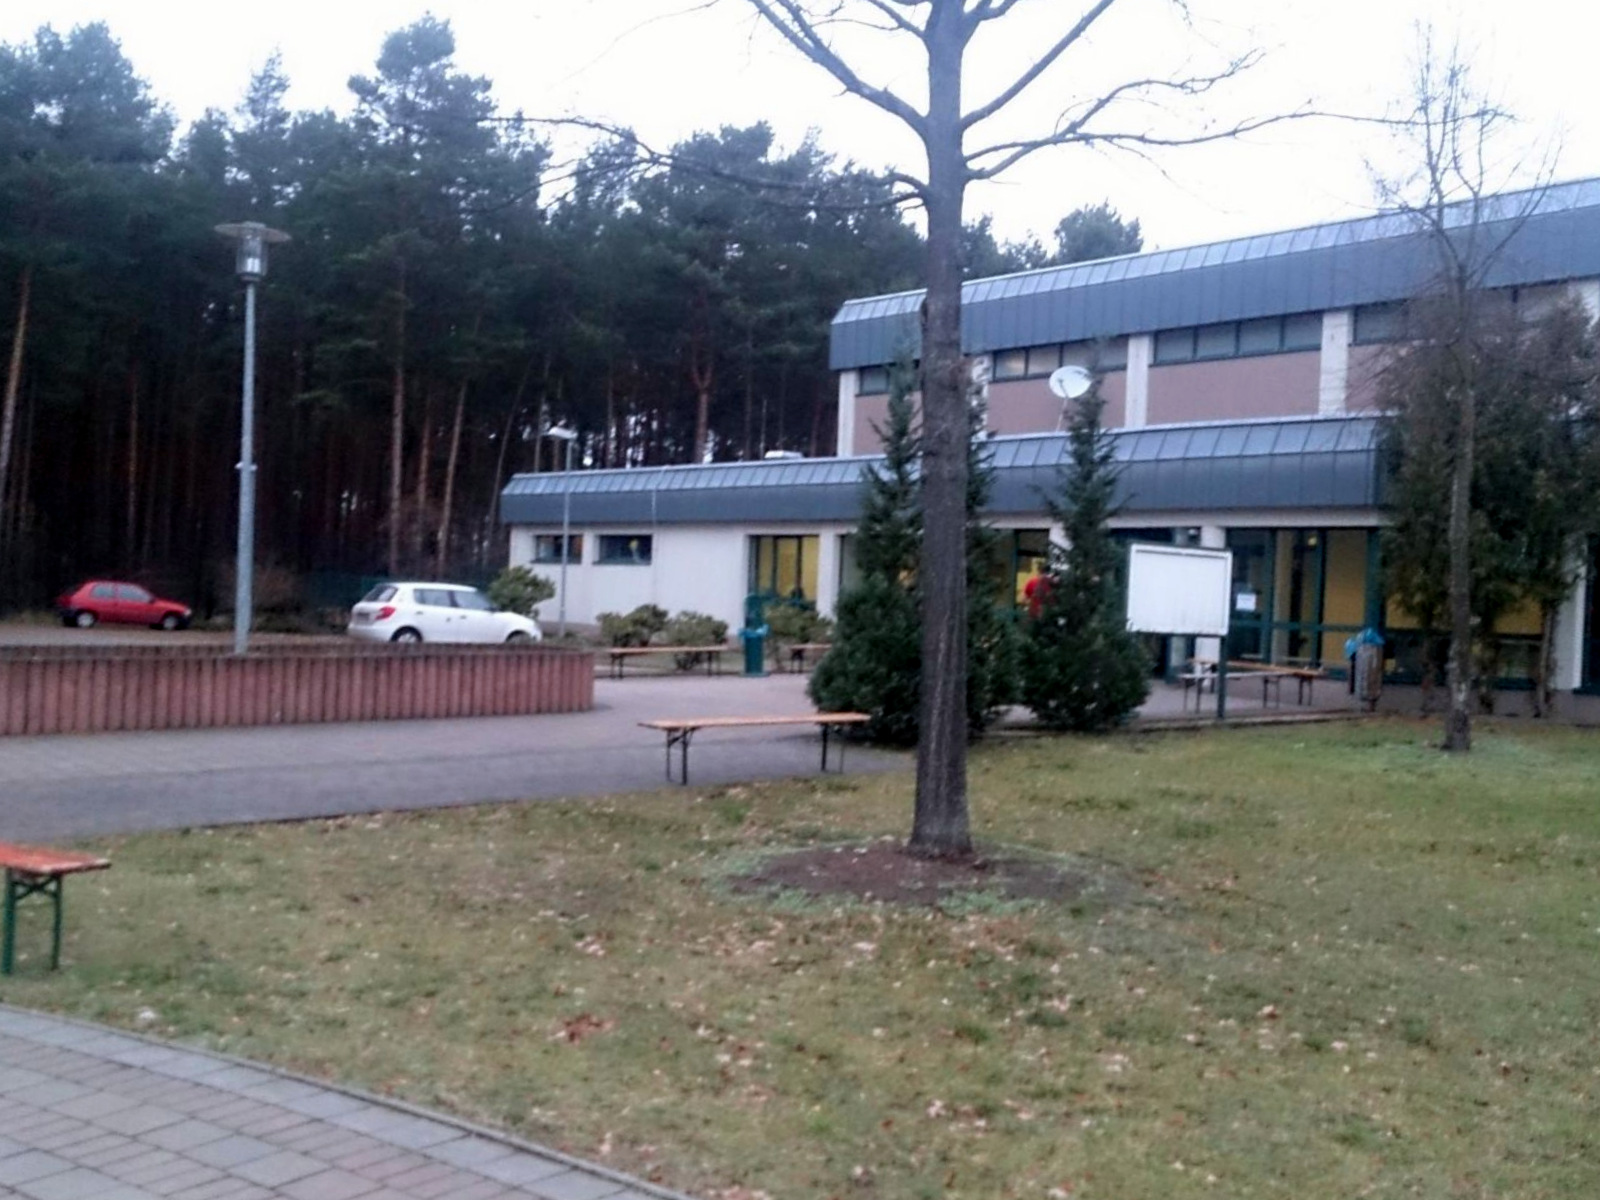 Set in the forest adjacent to a military base, refugees in this camp in Holzdorf, Germany, say they are so isolated that they really don't know if increased European terrorist alerts has sparked xenophobia, Nov. 28, 2015. (VOA News)